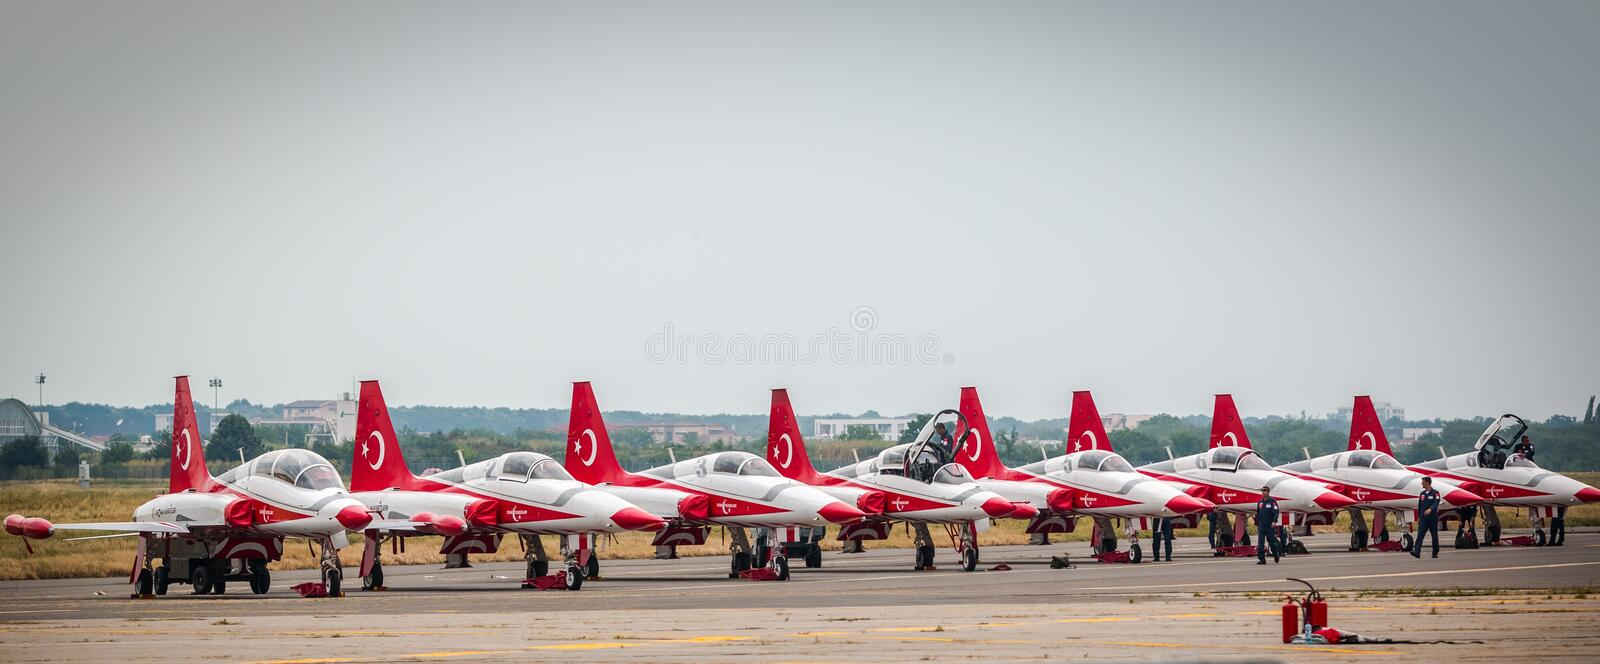 Turkish Star Airplains outline stock photography